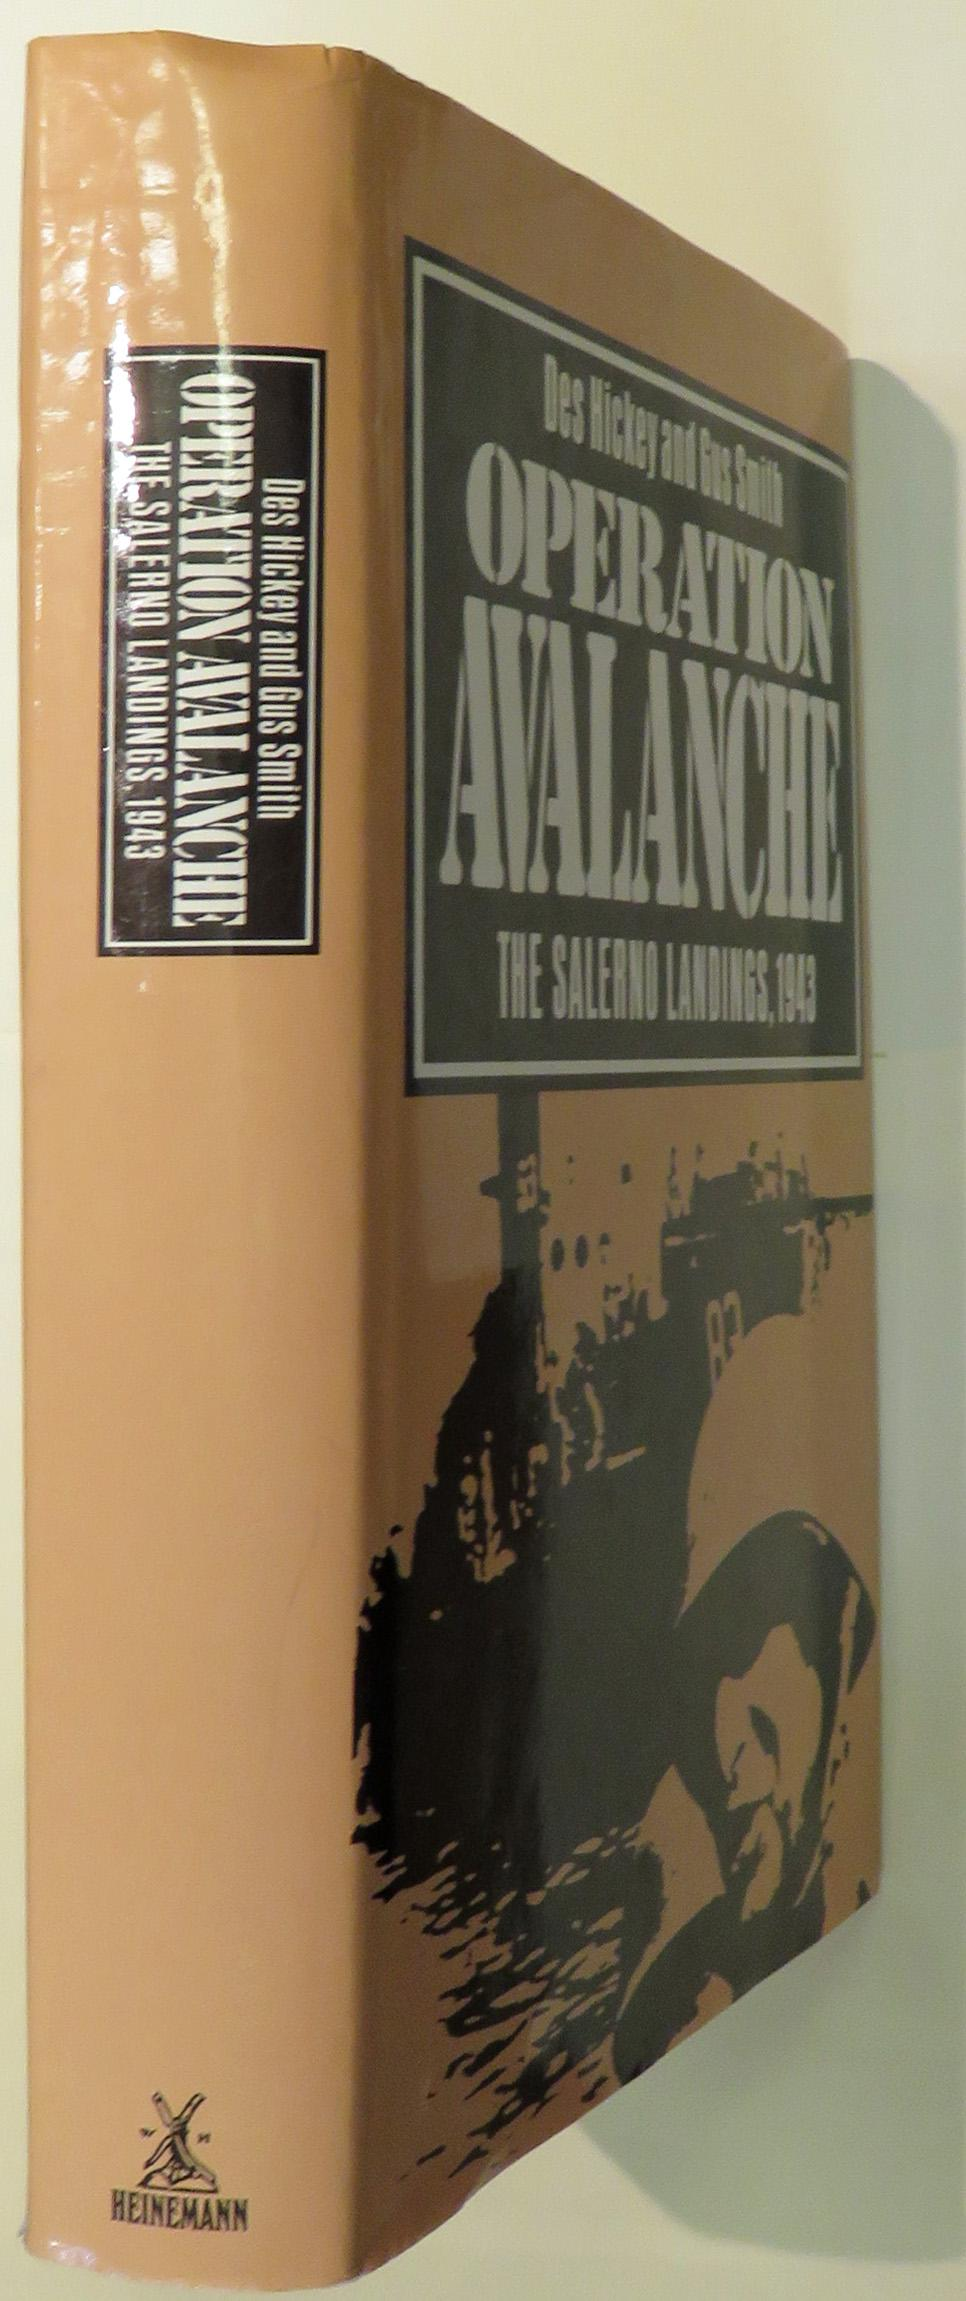 Operation Avalanche The Salerno Landings 1943